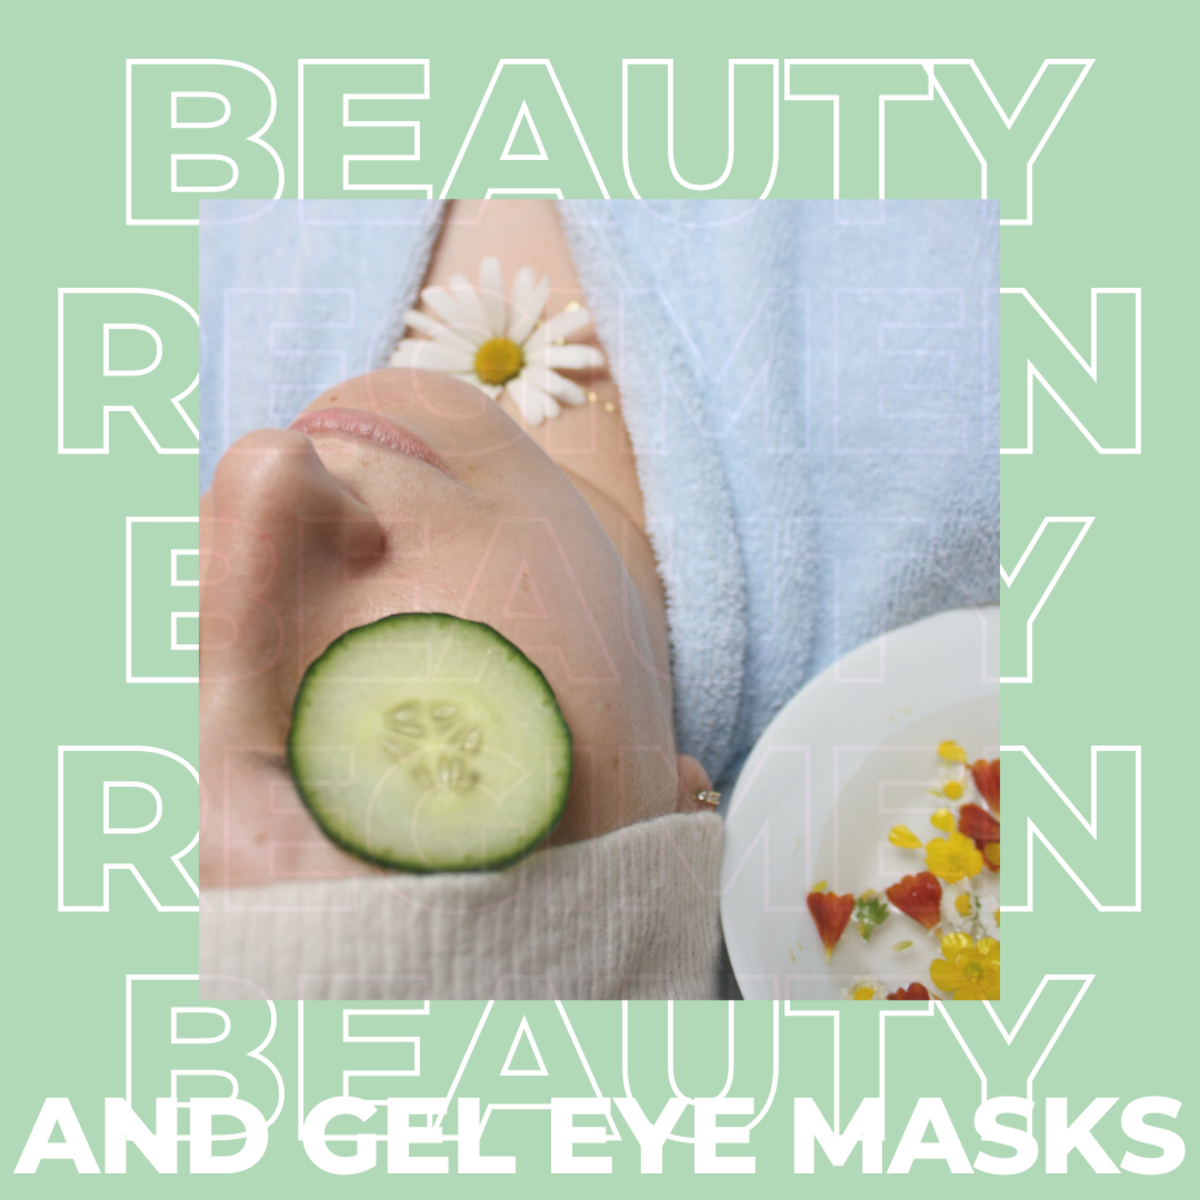 Adding an eye mask to your beauty regimen.